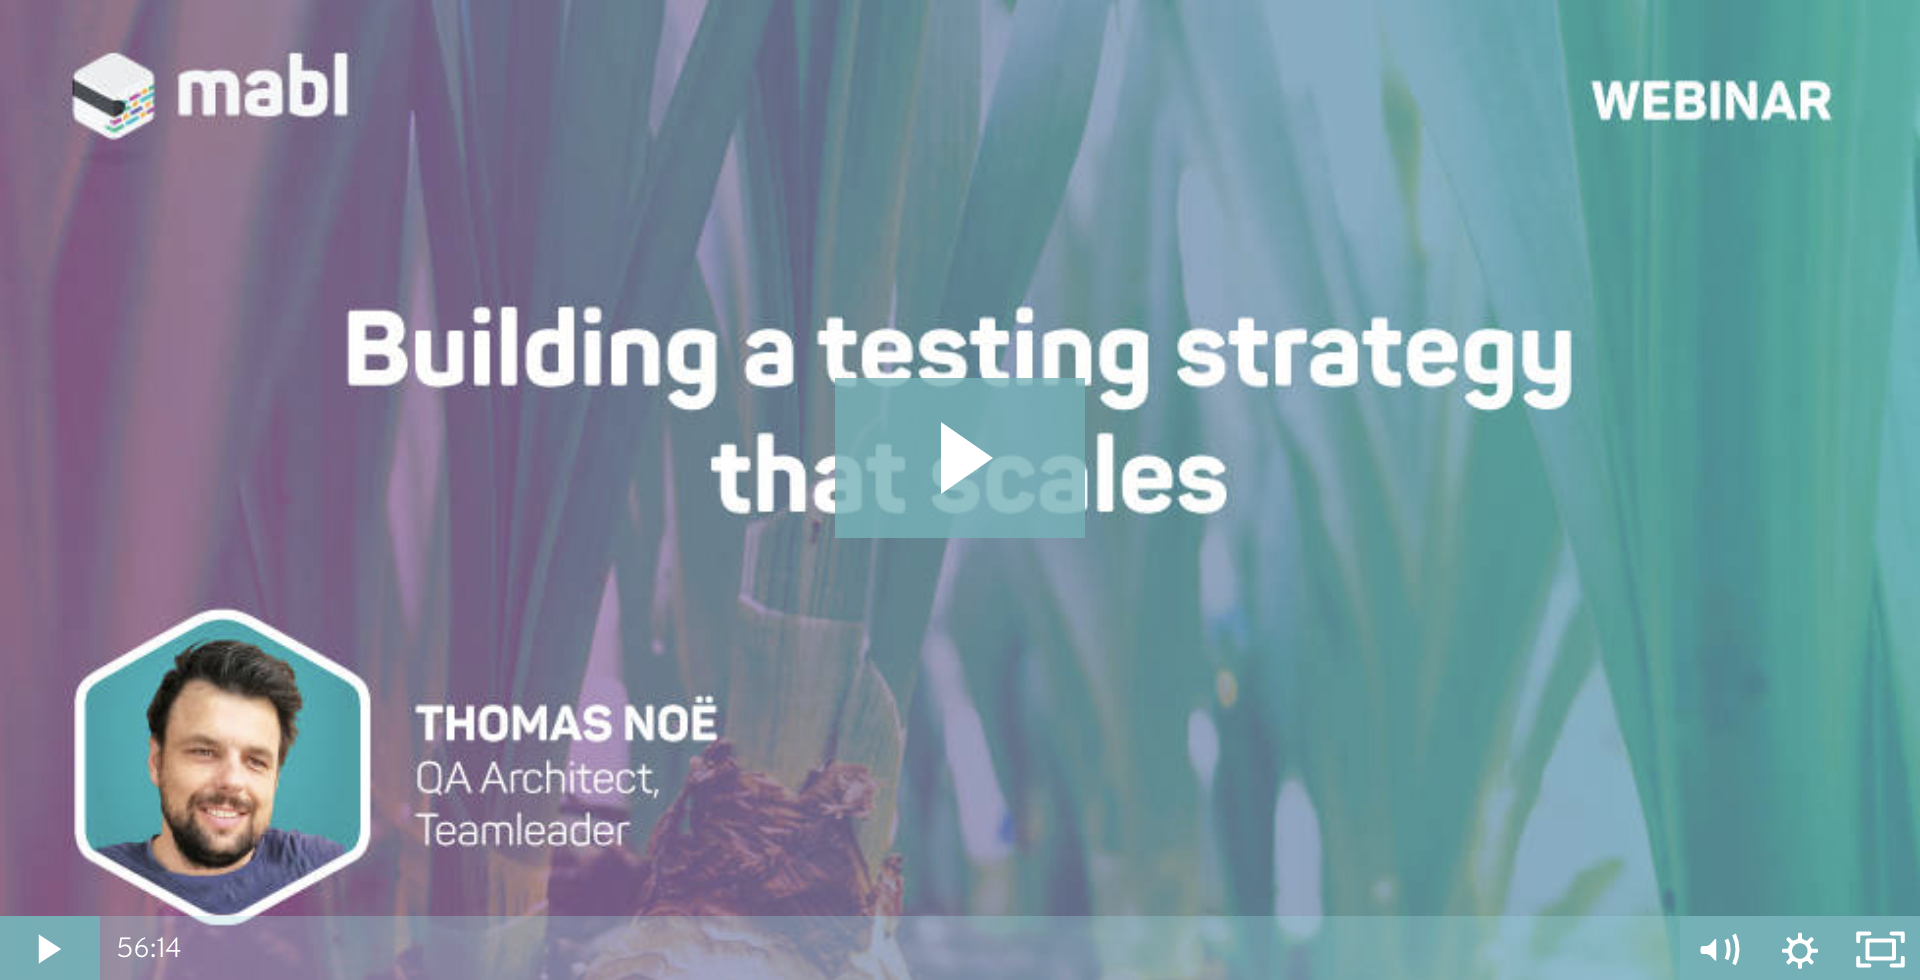 [WEBINAR] Building a testing strategy that scales